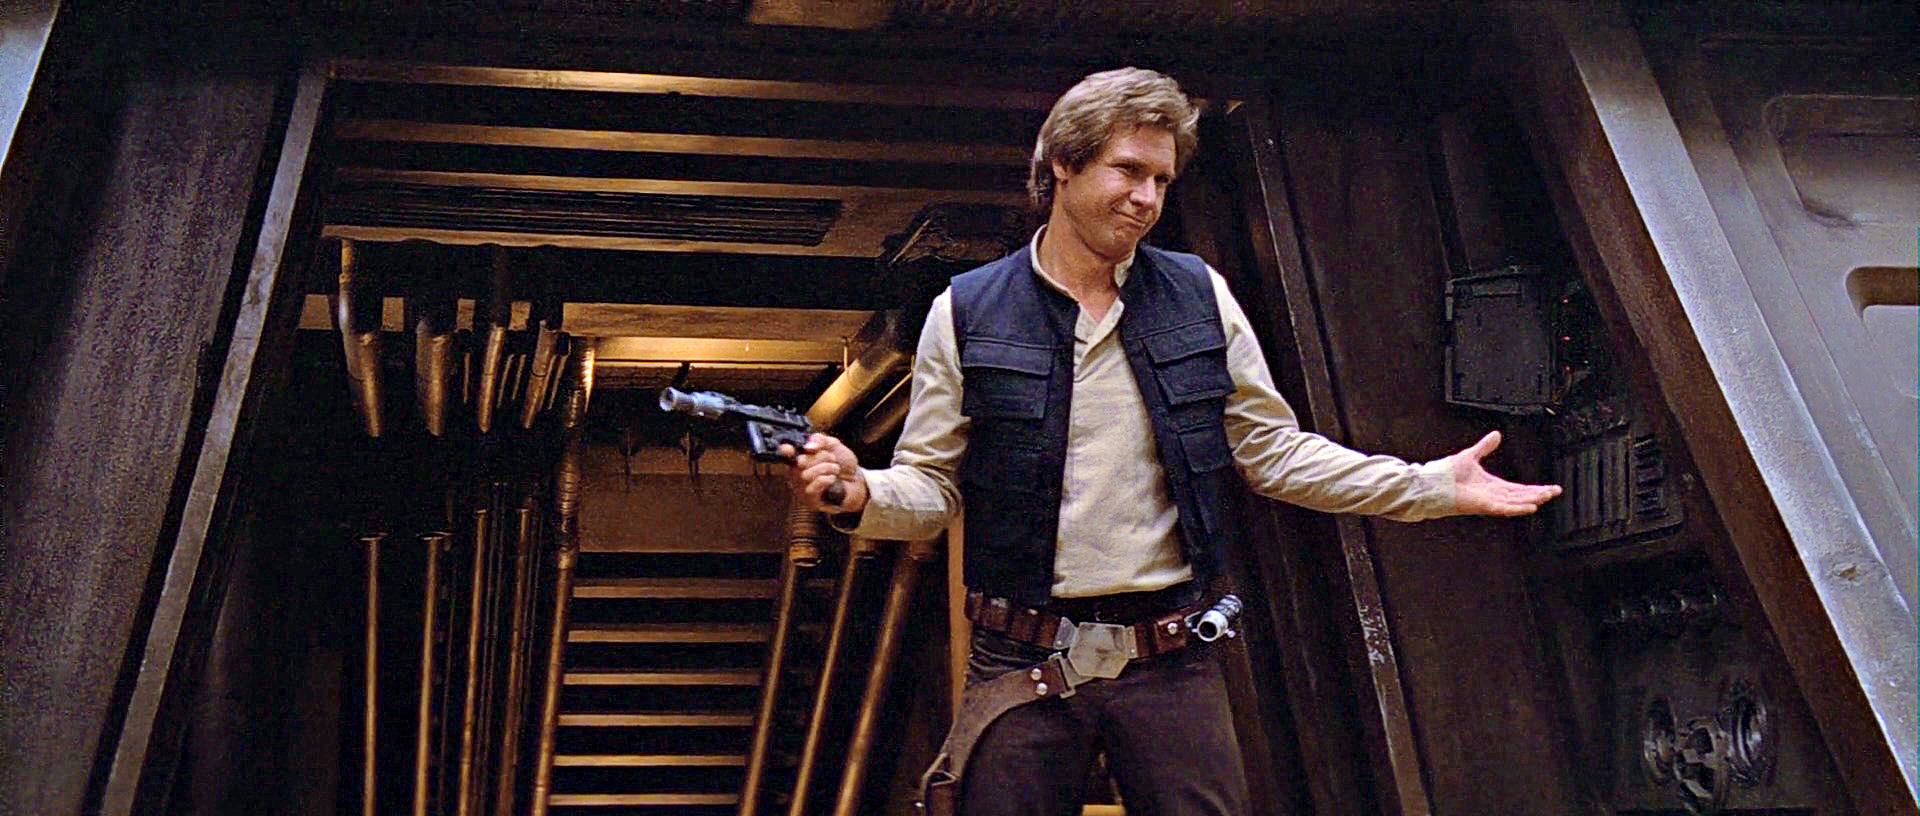 https://cinemaplanet.pt/wp-content/uploads/2016/05/han-solo-return-of-the-jedi.jpg